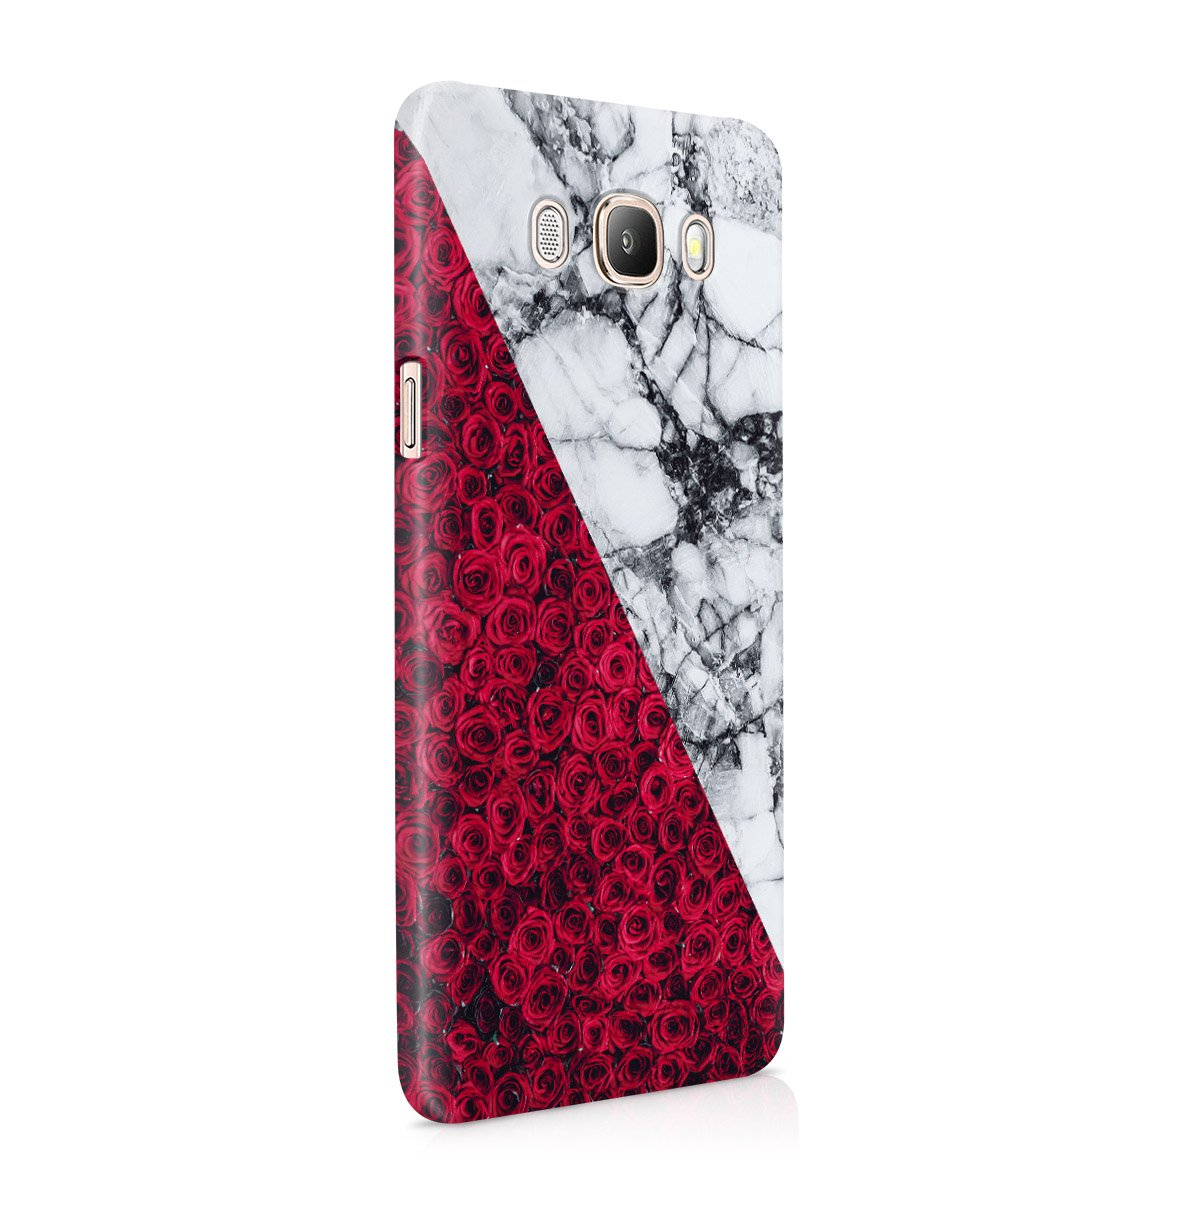 Grey Marble With Red Roses Samsung Galaxy J5 2016 Snap-On Hard Plastic Protective Shell Case Cover C